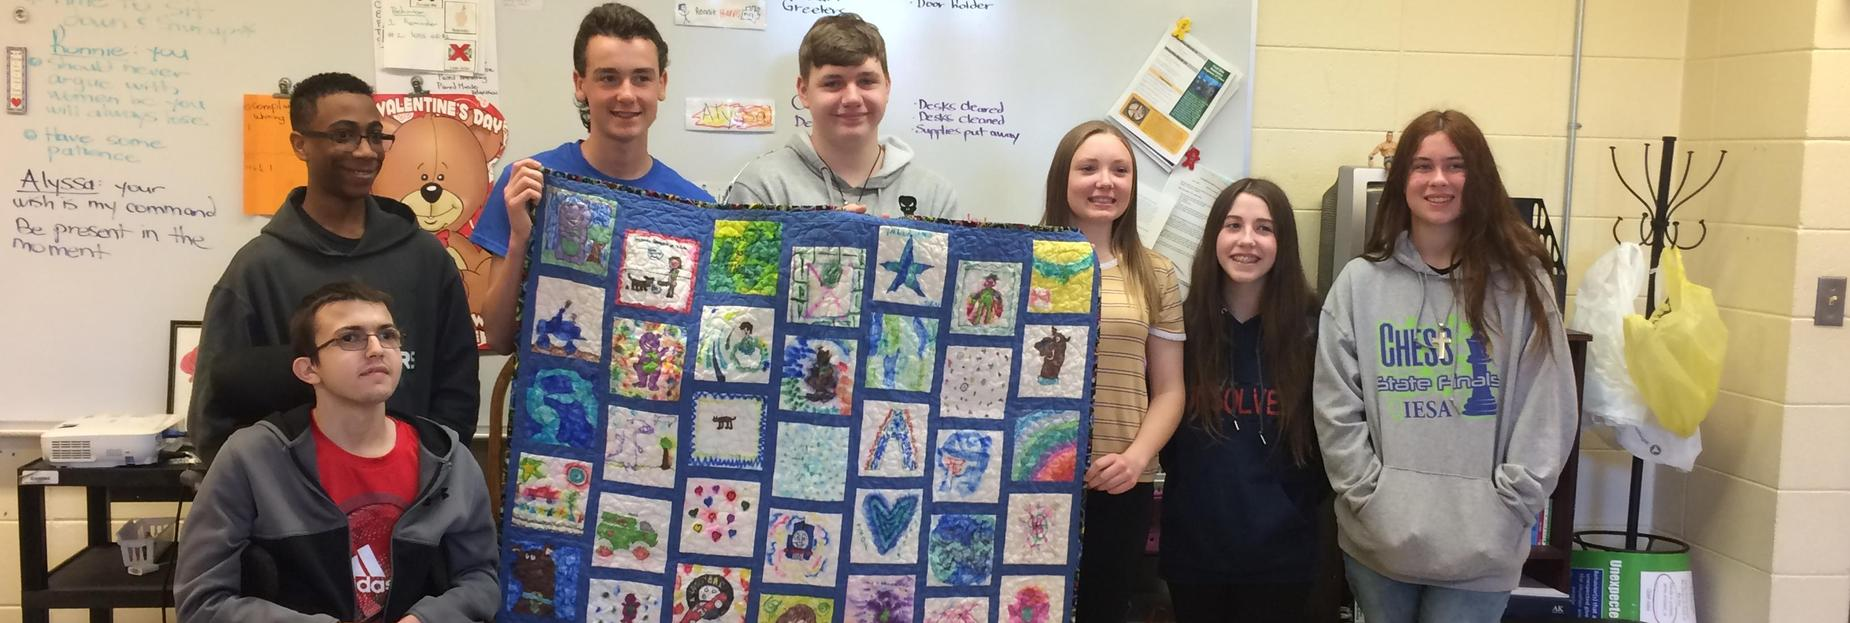 Quilt at CCMS